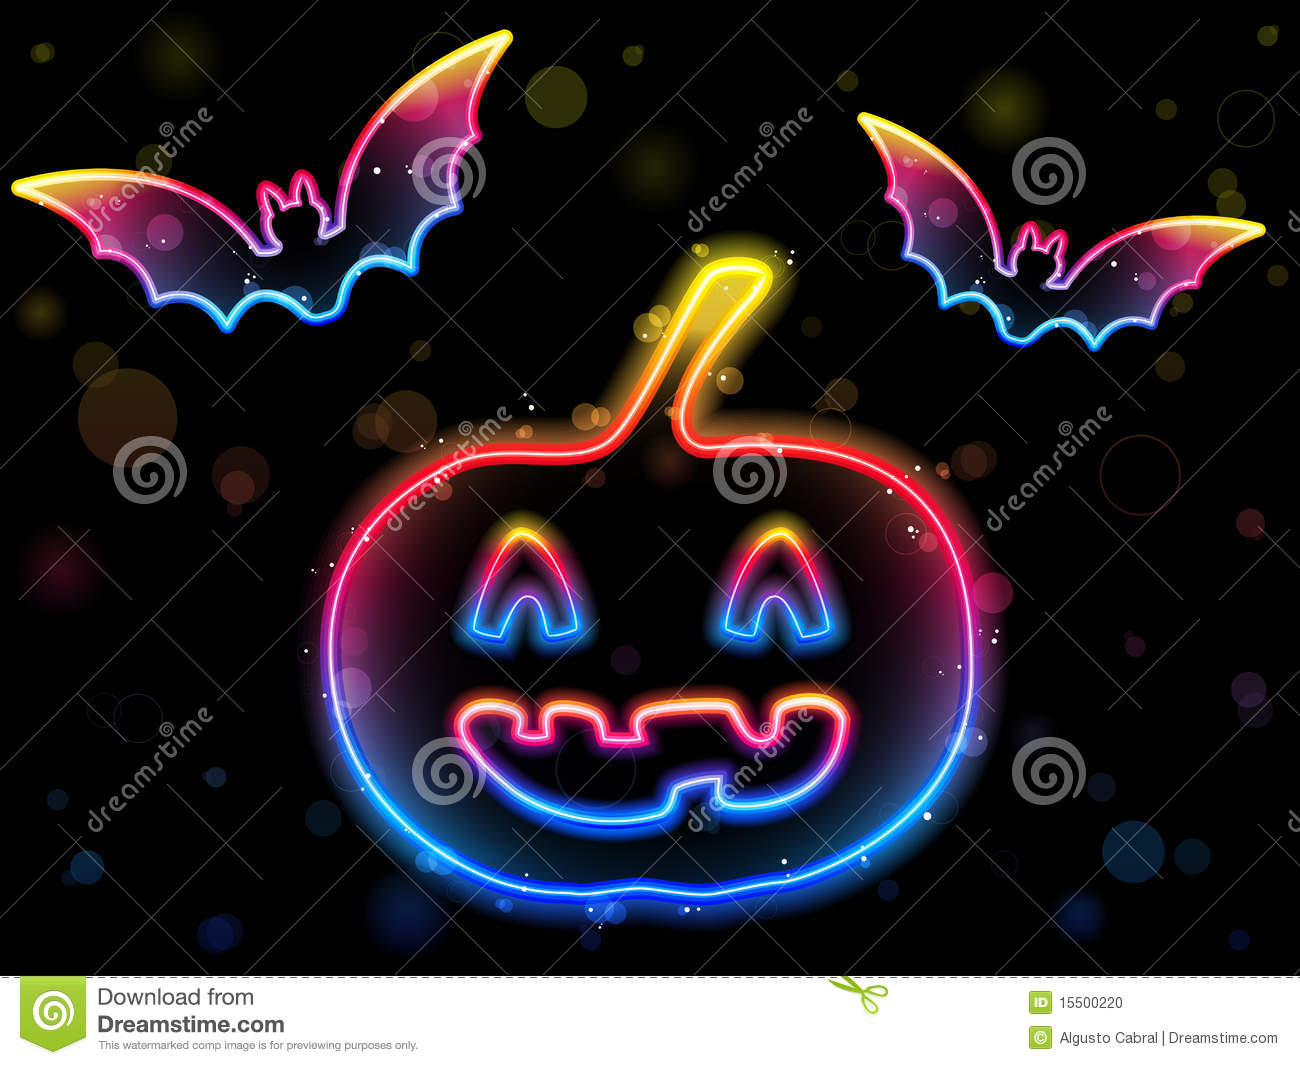 Free Cute Fall Wallpaper Halloween Neon Background Stock Vector Image Of Fall